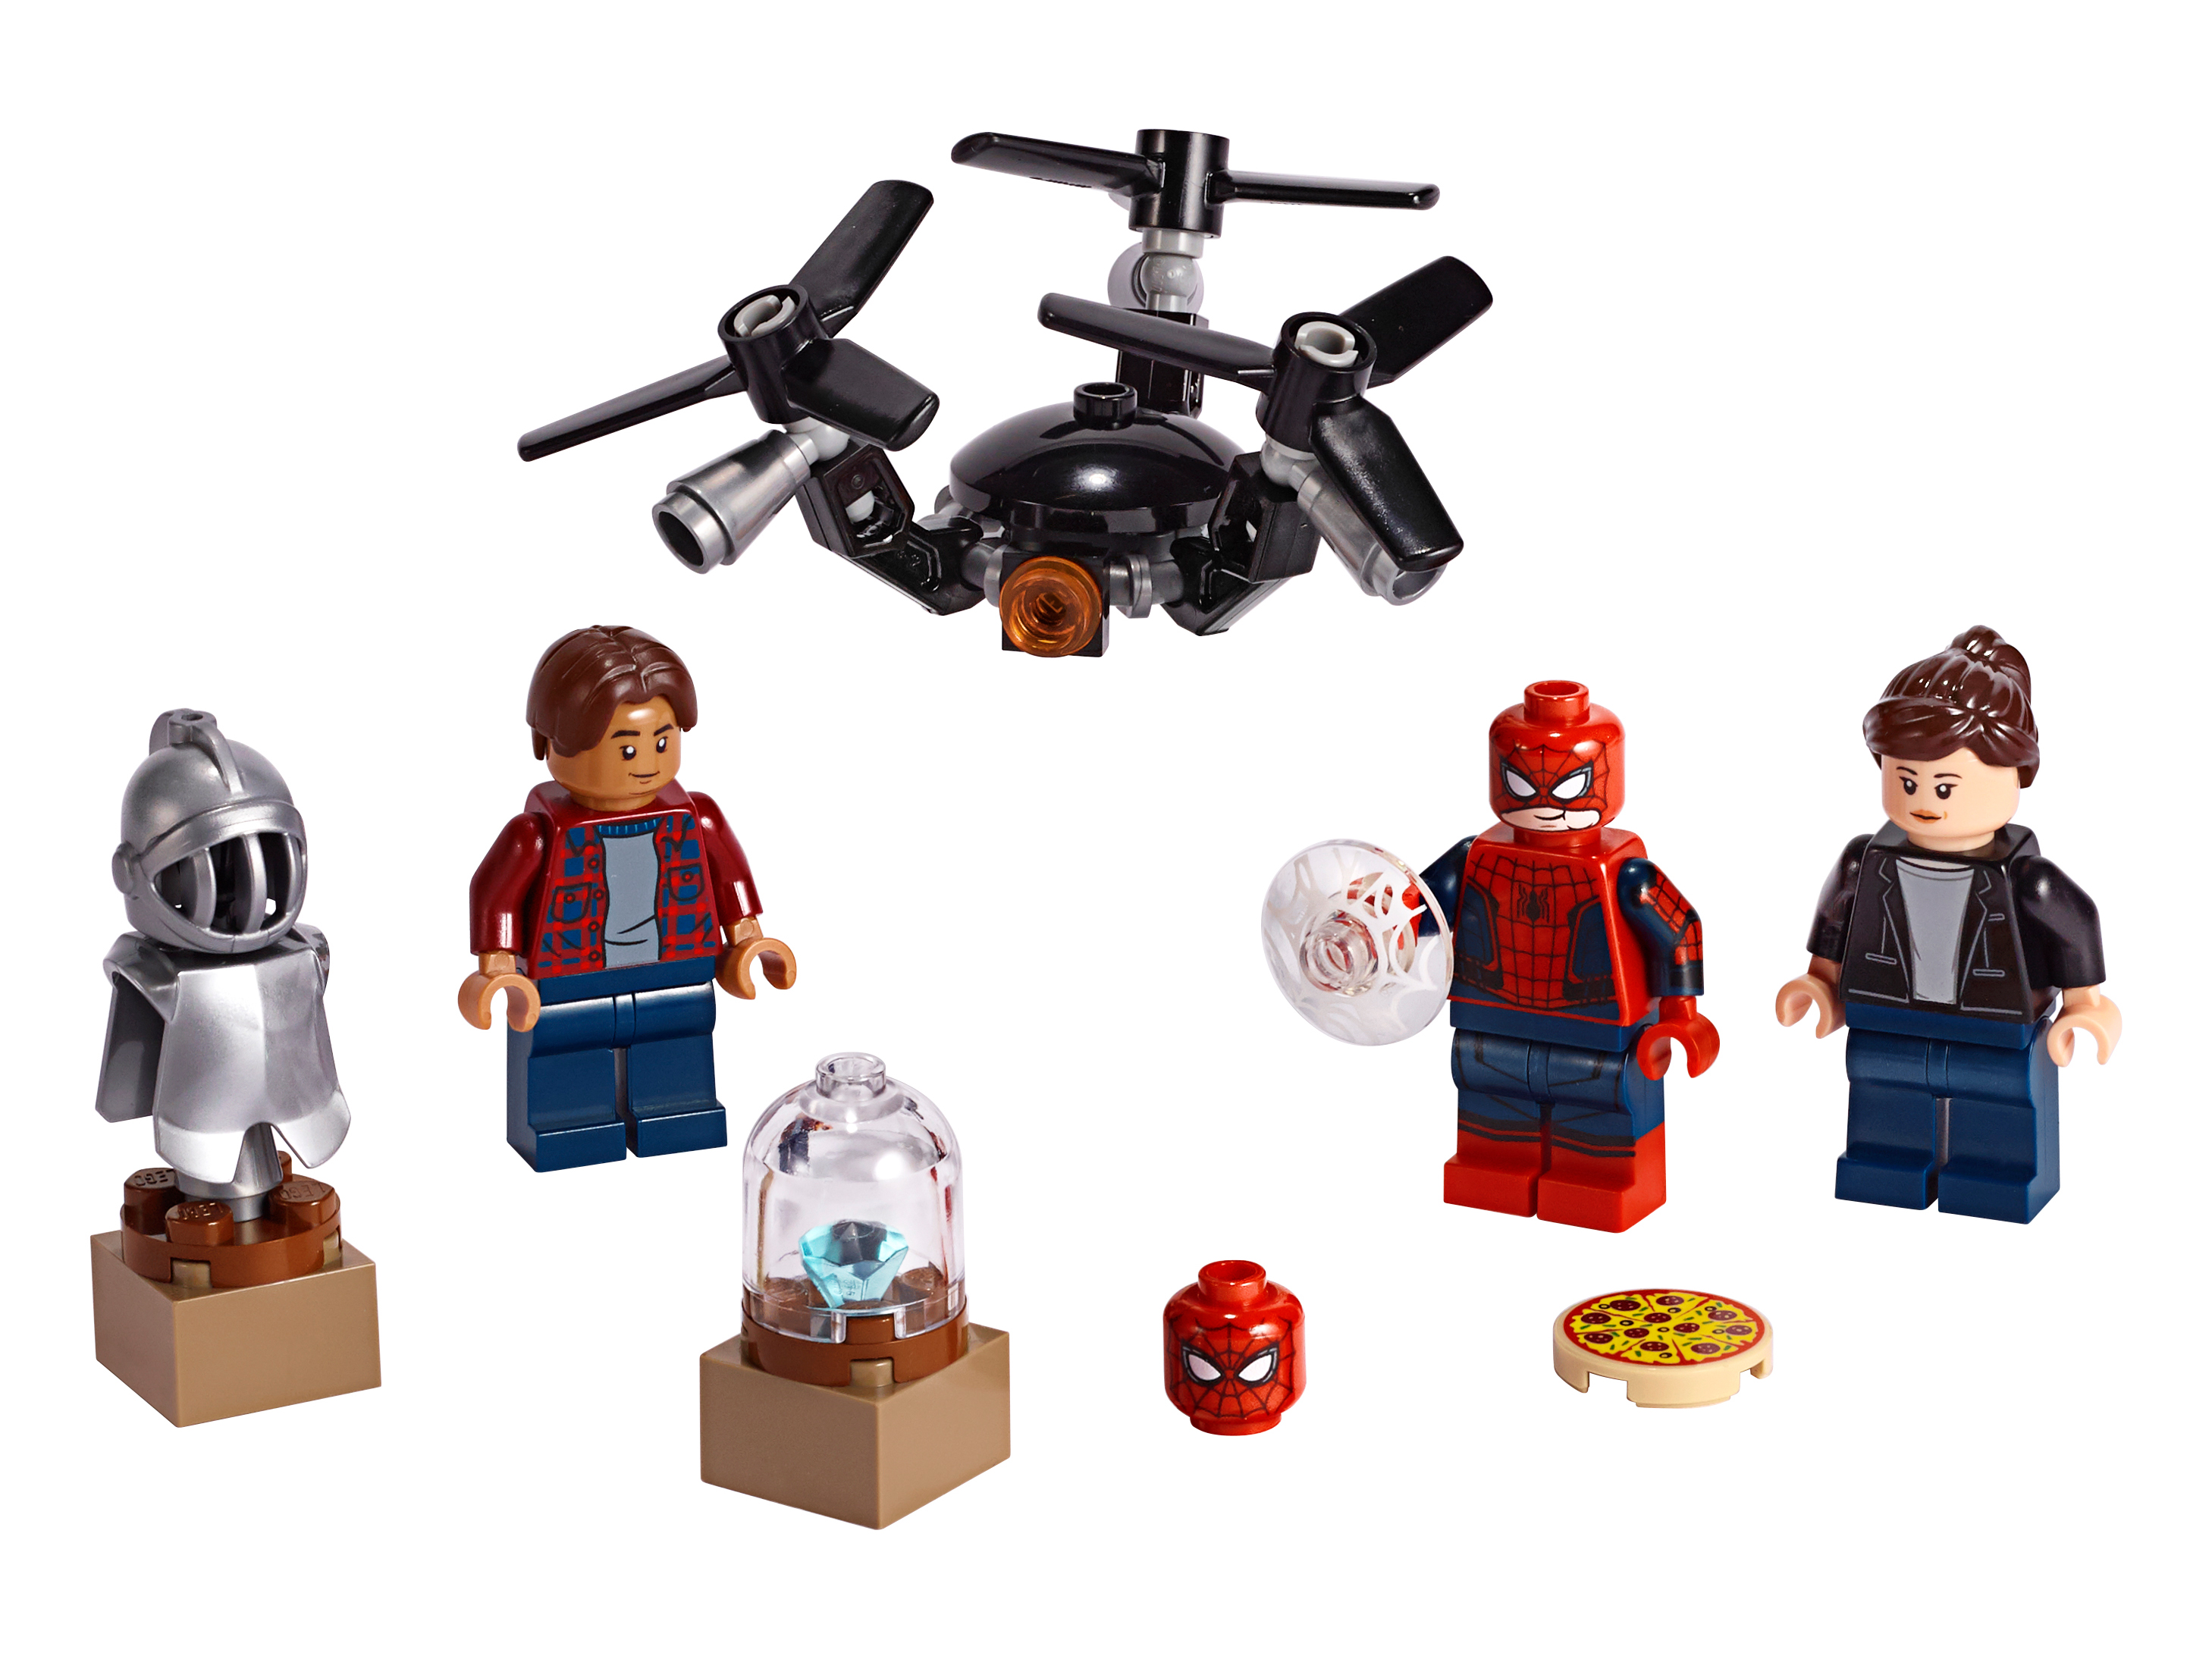 More Images Of Summer 2019 Lego Minifigure Packs The Brick Fan